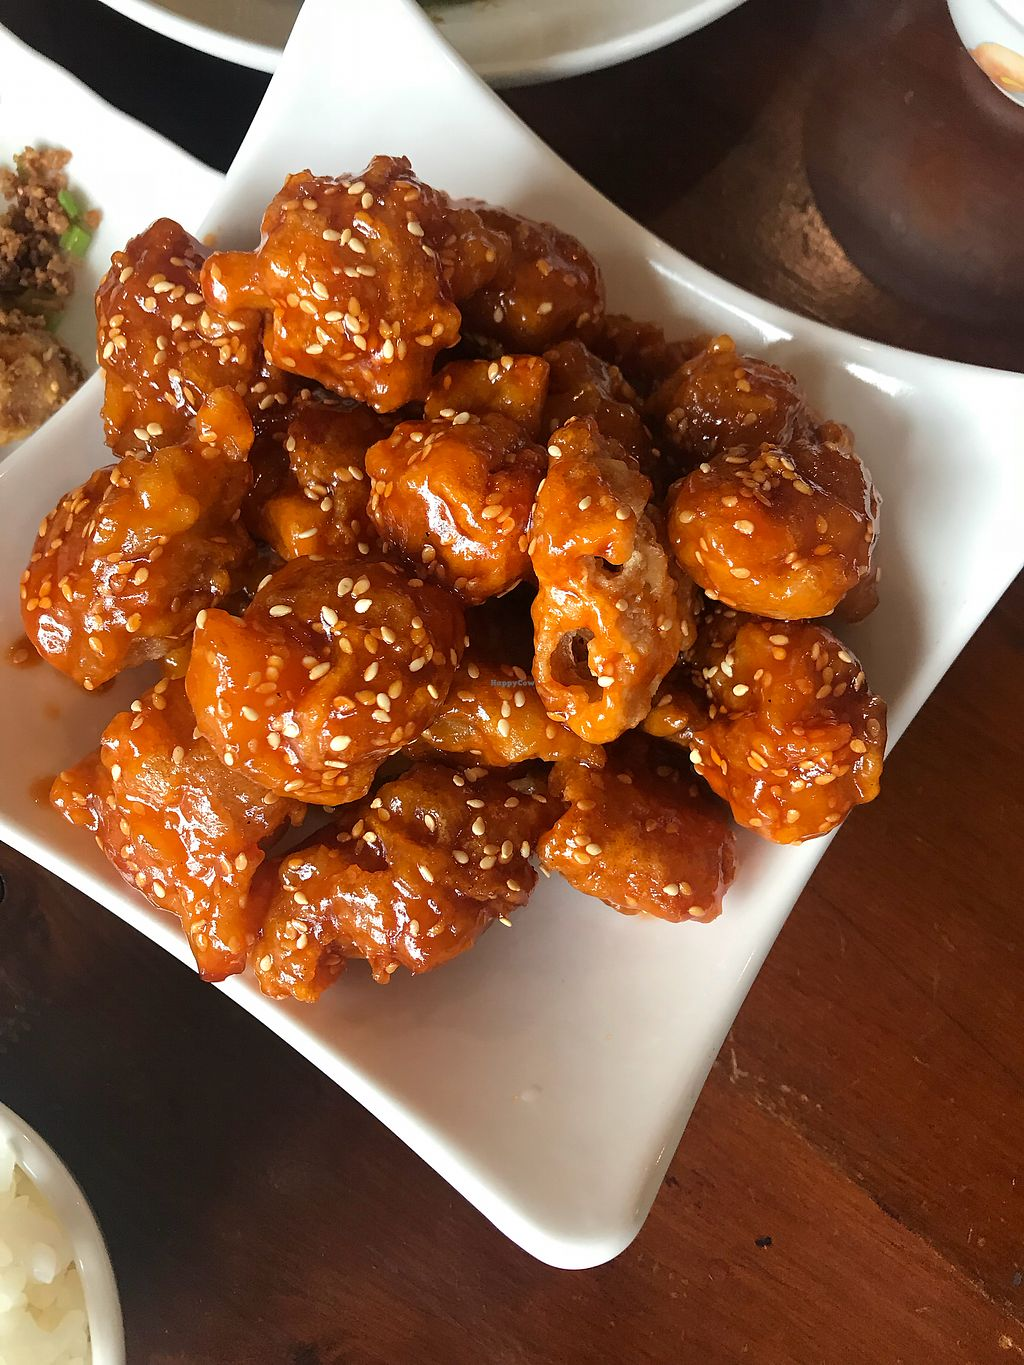 """Photo of Mei Shin Vegetarian Restaurant  by <a href=""""/members/profile/khristynehassan"""">khristynehassan</a> <br/>One of my favorite dishes !! <br/> March 12, 2018  - <a href='/contact/abuse/image/93873/369753'>Report</a>"""